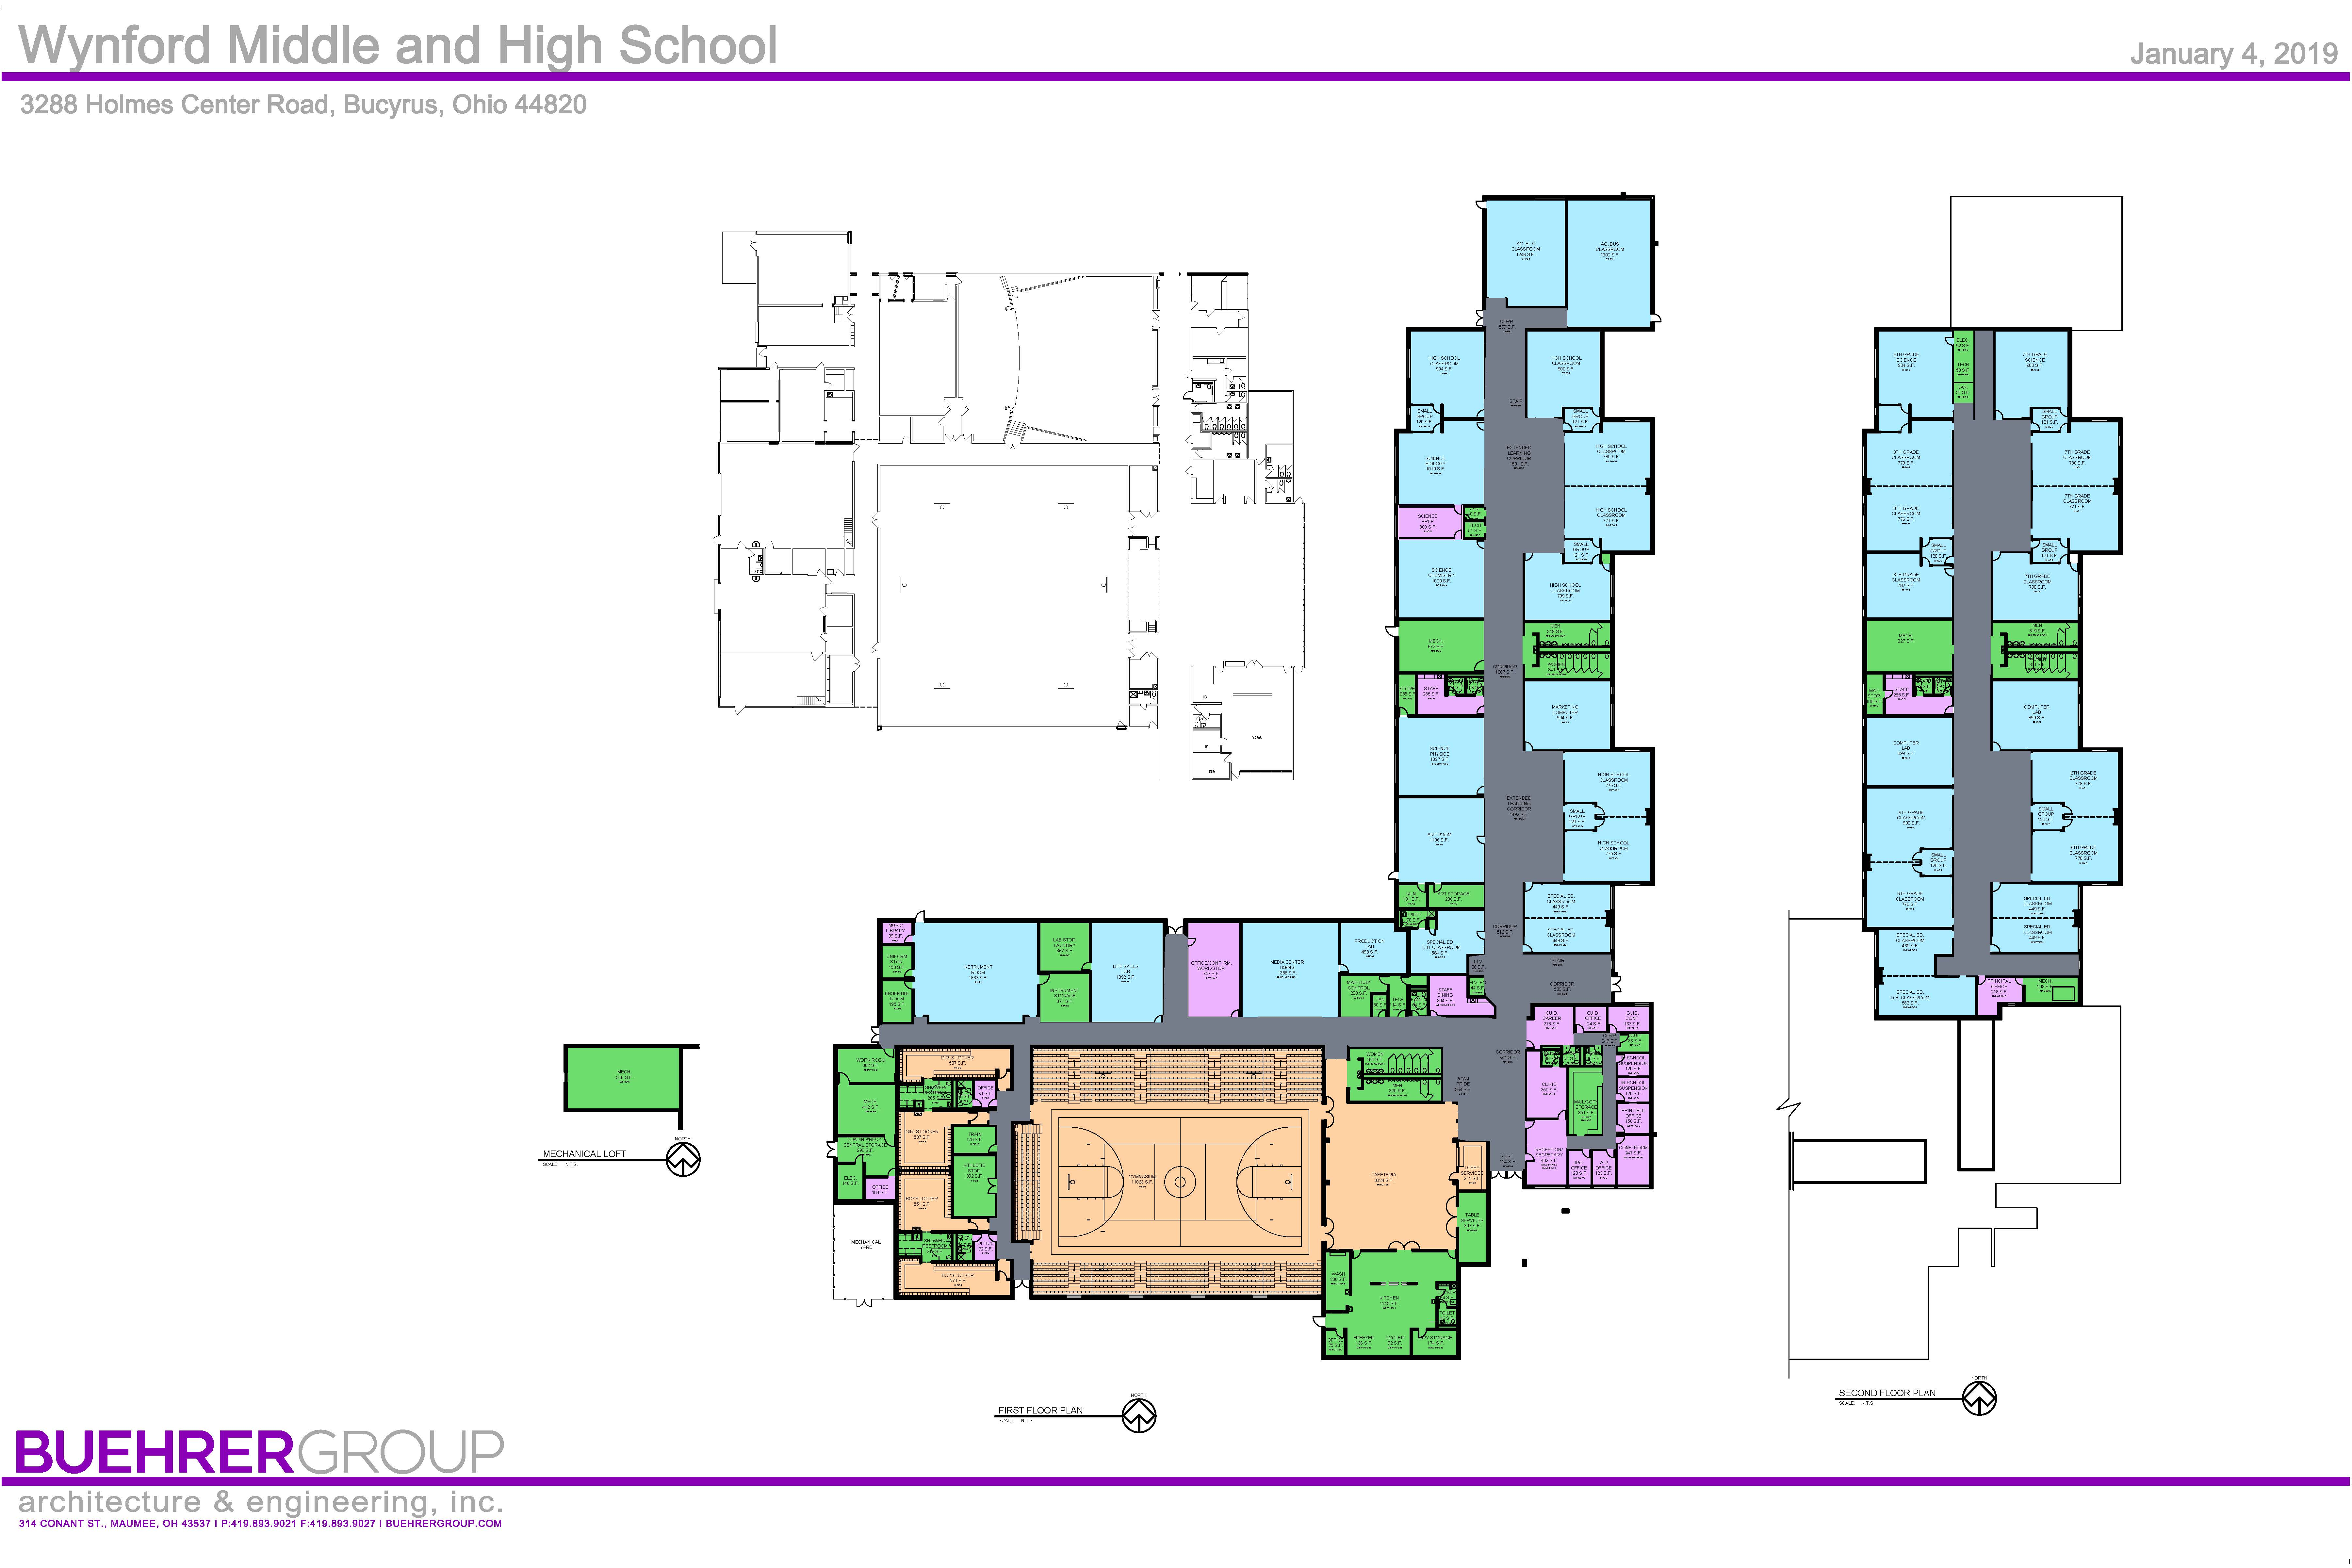 Wynford Middle and High School construction plans.